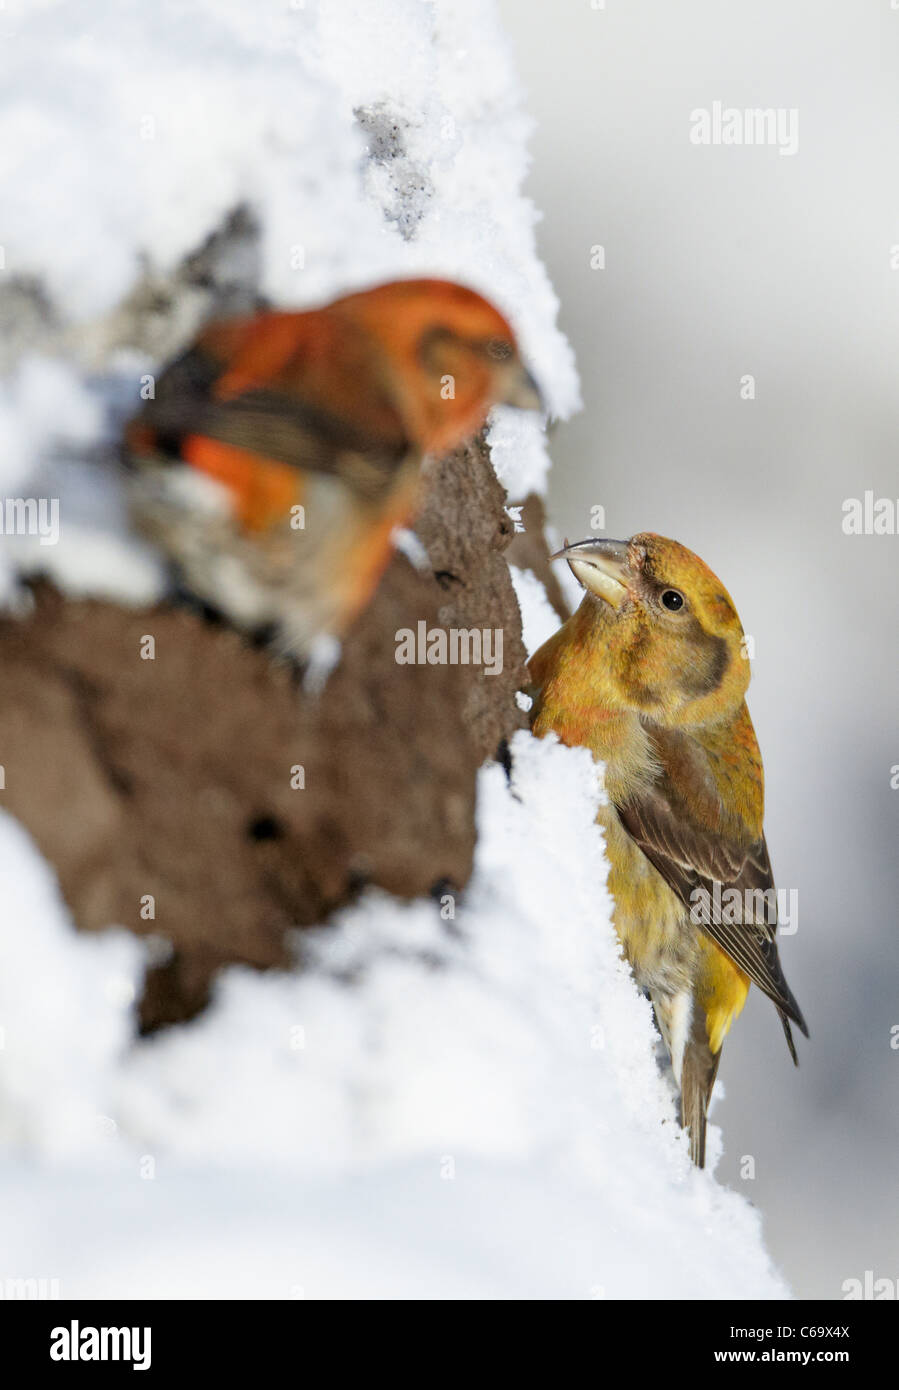 Common Crossbill, Red Crossbill (Loxia curvirostra). Pair foraging in a snowy spruce. - Stock Image